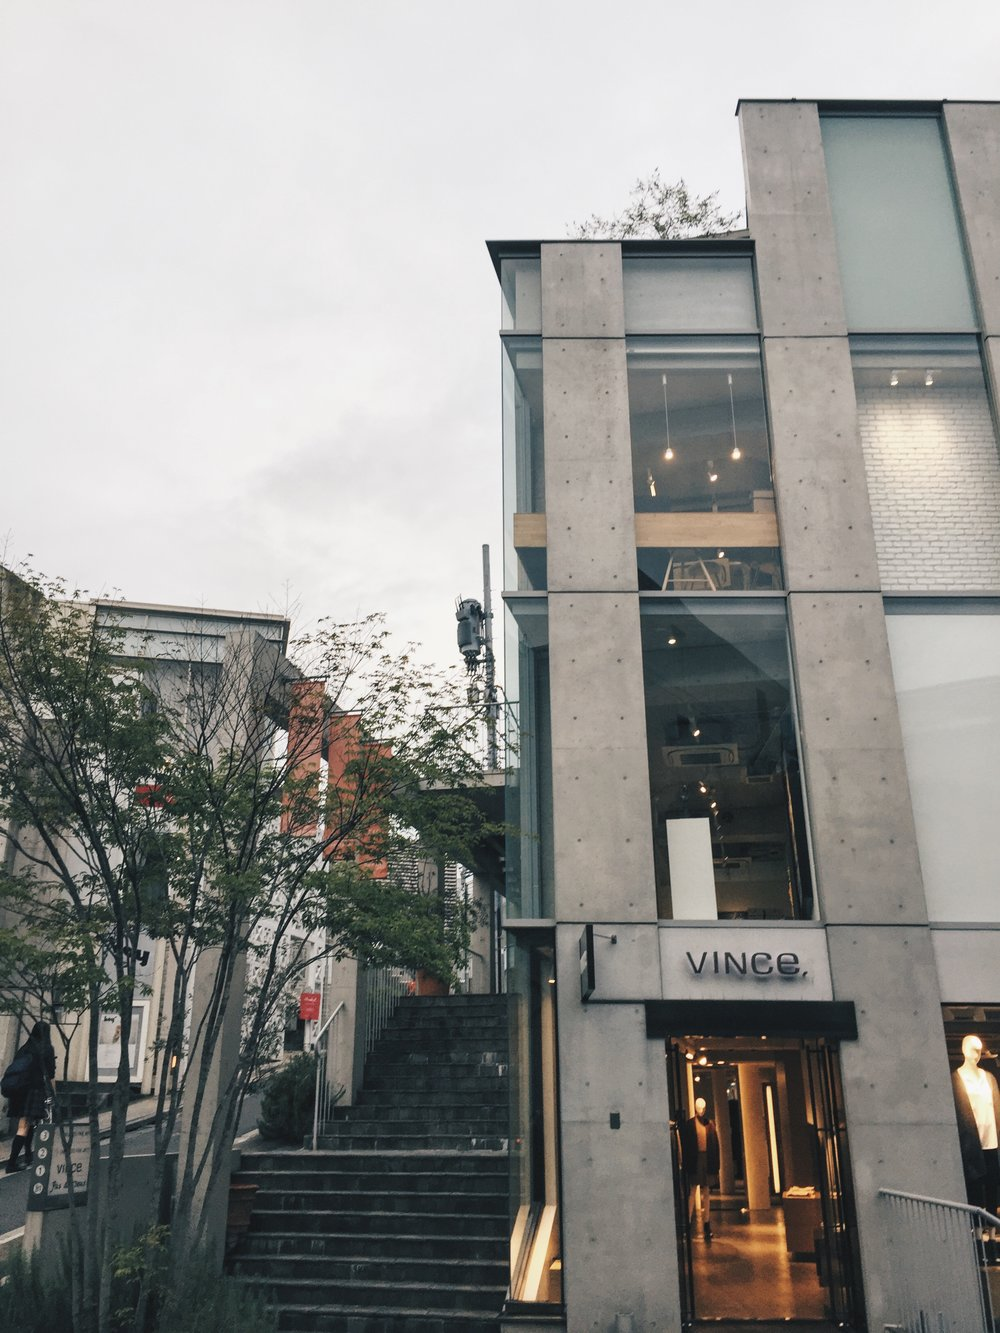 Designer brands and some boutiques opened in the residential area - Fashion & Lifestyle Spots in Tokyo, Japan - DROP